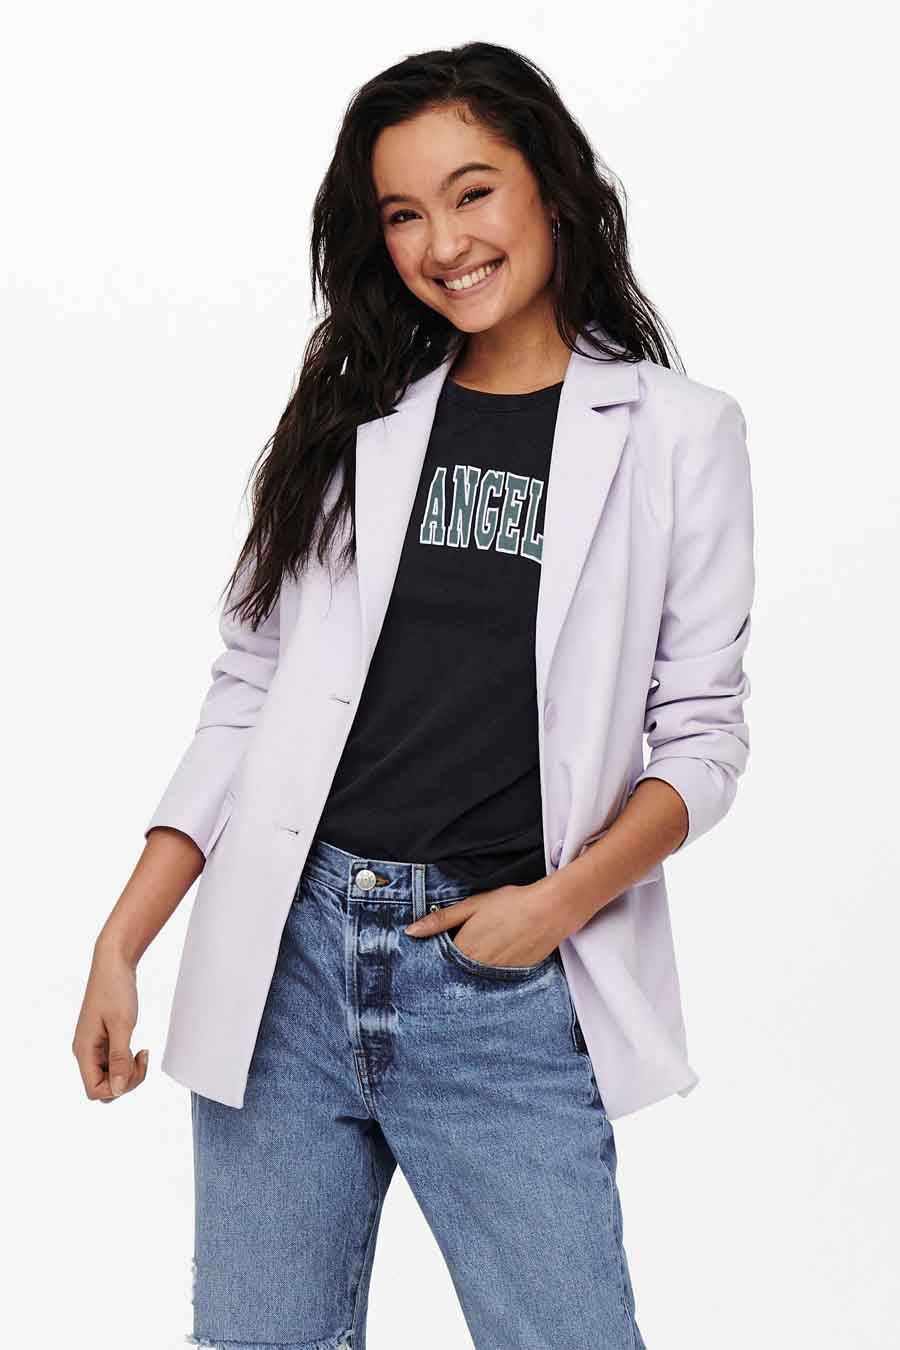 ONLY® Blazer, Wit, Dames, Maat: 38/40